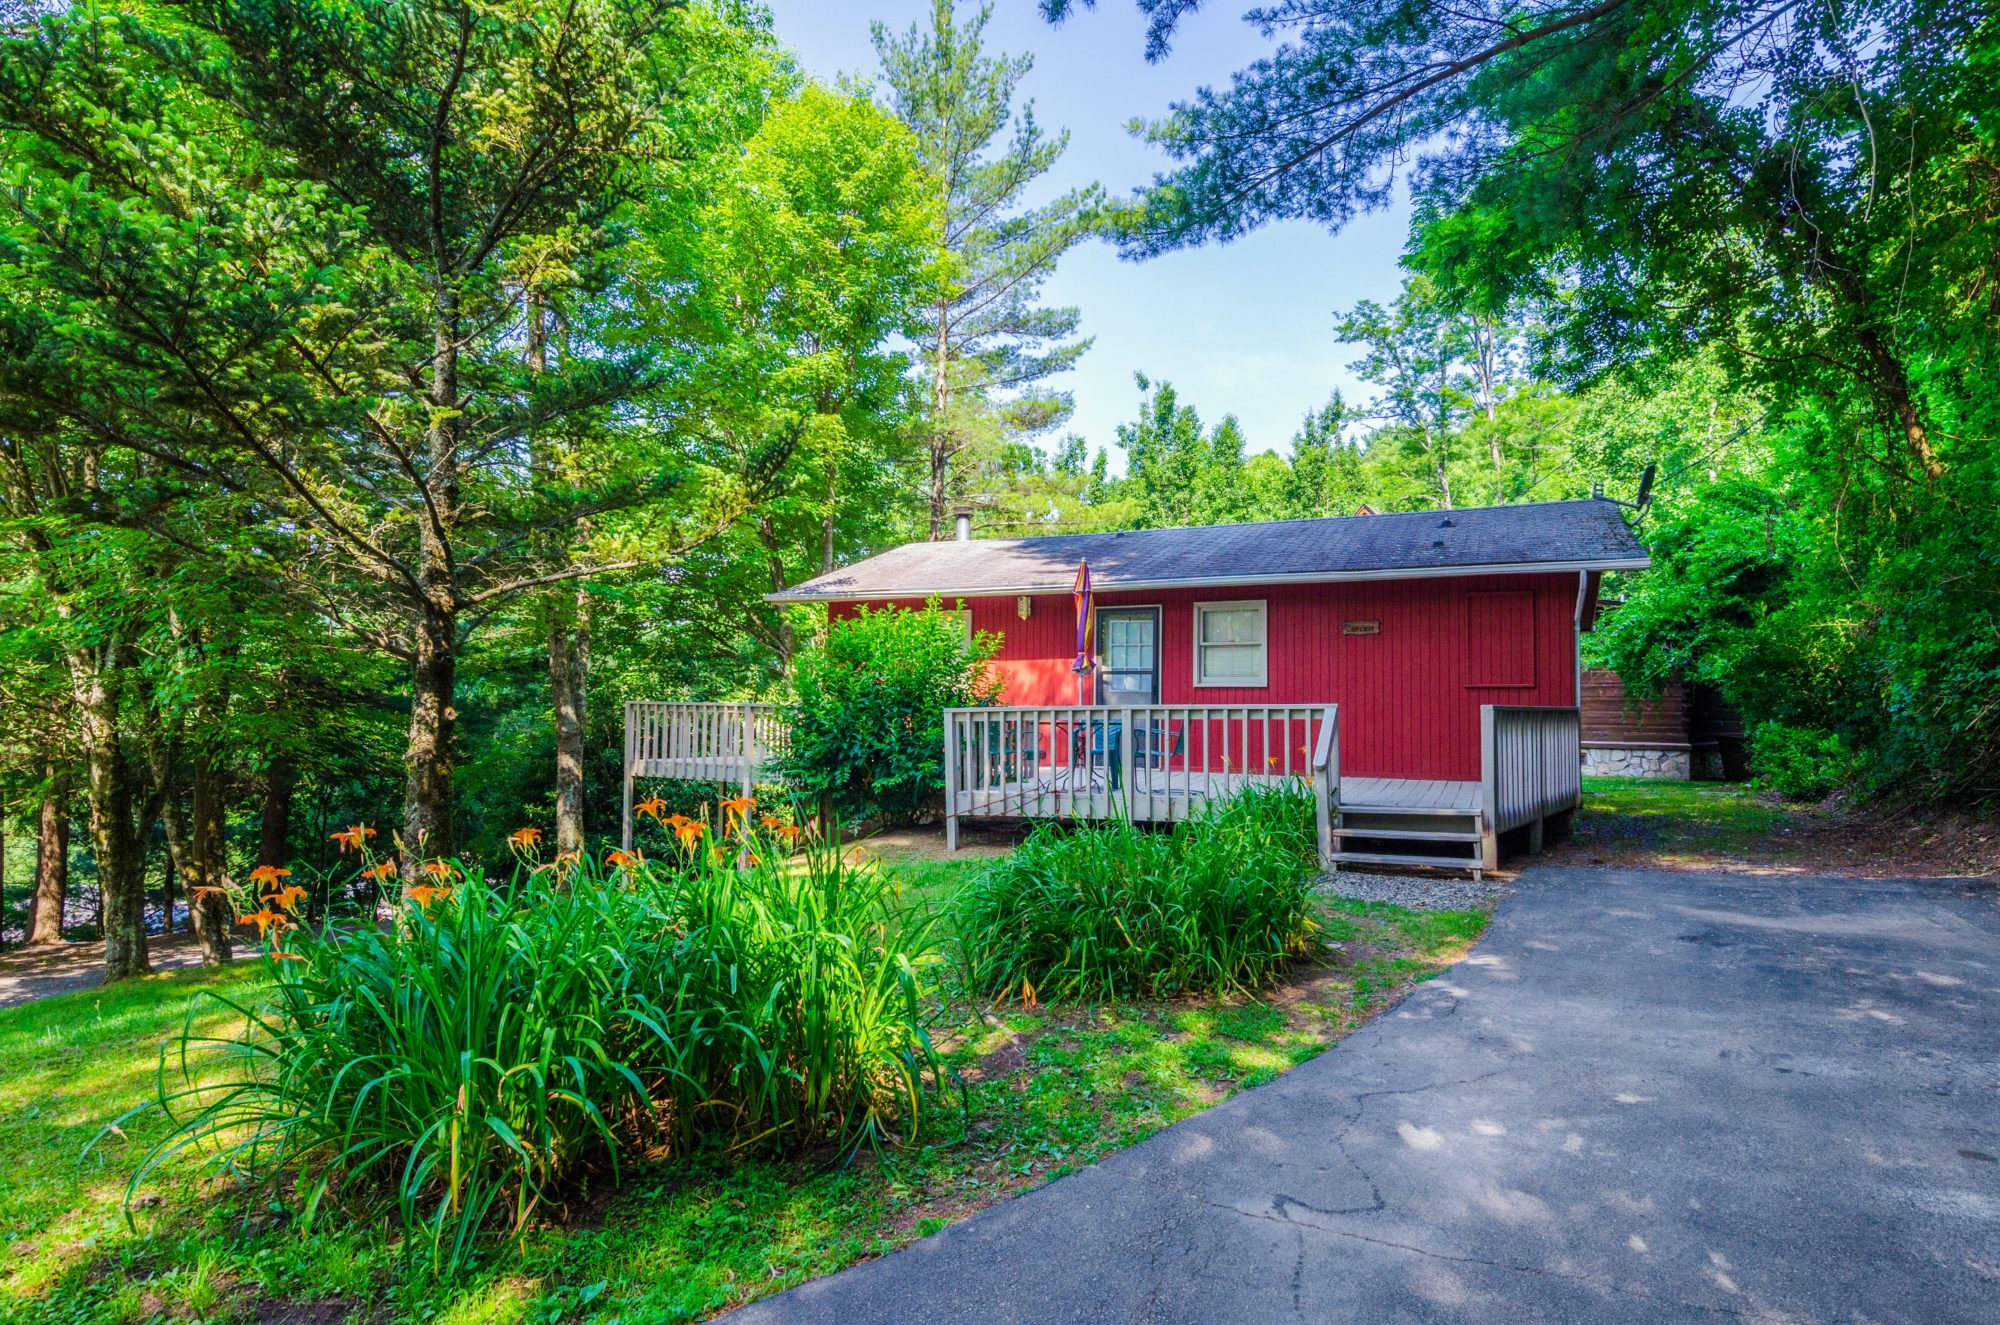 Red painted cottage exterior showing wooden deck with wooden railings, trees, landscaping and parking area